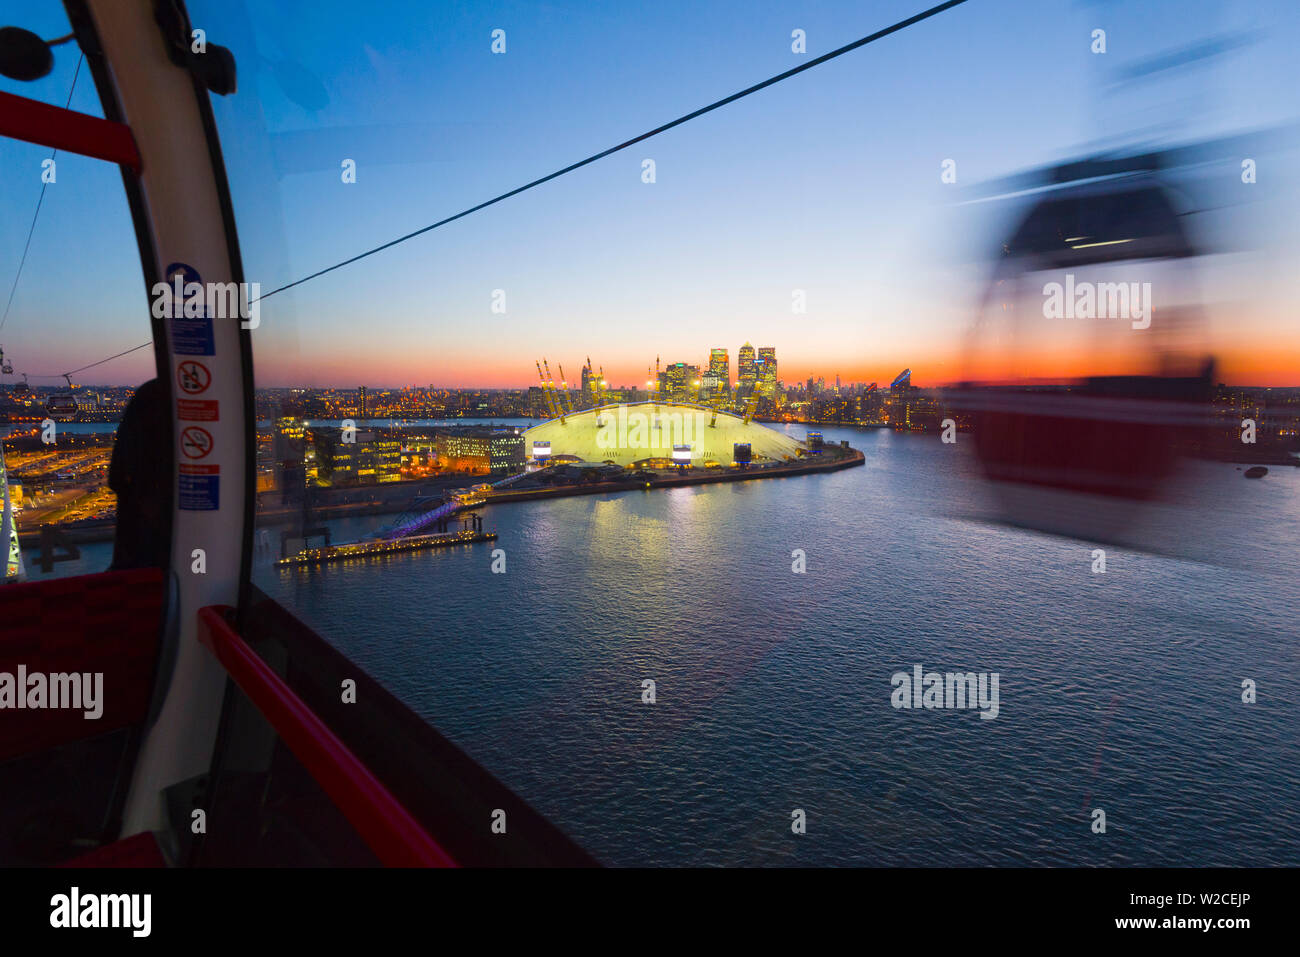 UK, England, London, O2 Arena (formerly Millennium Dome) and Canary Wharf skyline from the Emirates Air Line or Thames Cable Car over River Thames, from Greenwich Peninsula to Royal Docks Stock Photo